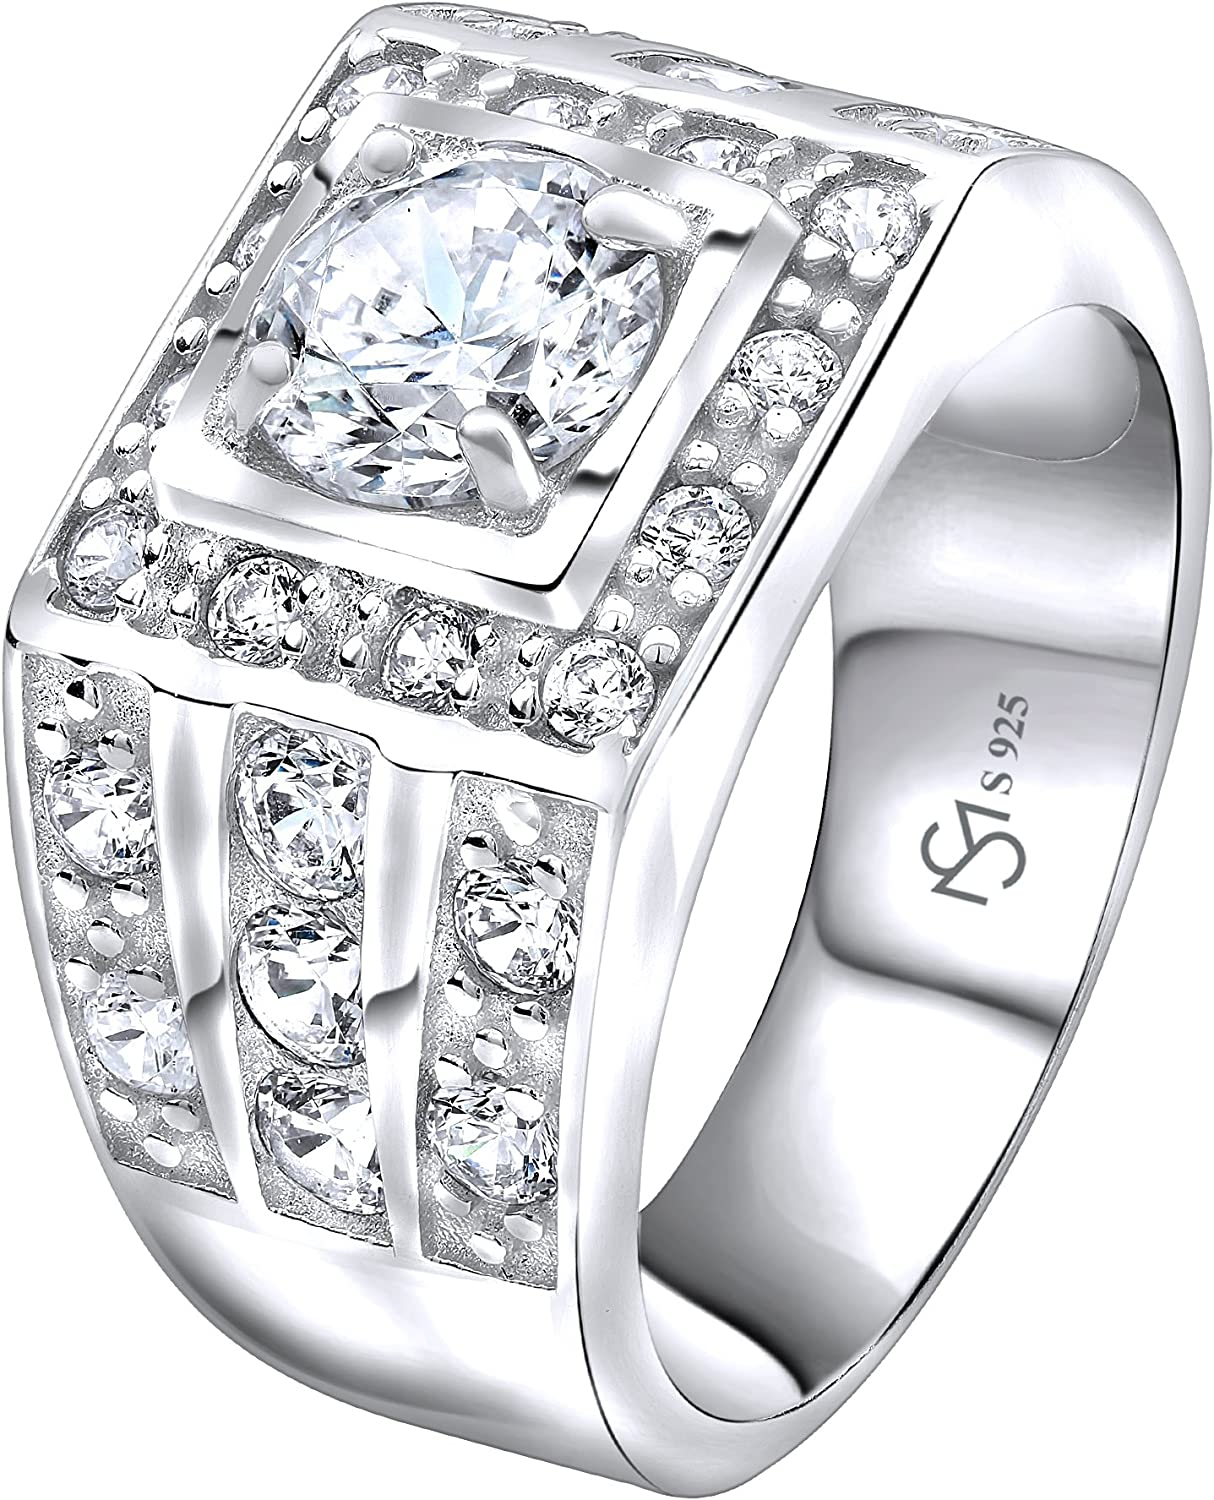 [2-5 Days Delivery] Men's Sterling Silver .925 Ring with White Round Cubic Zirconia Center Stone Surrounded by White Cubic Zirconia (CZ) Stones